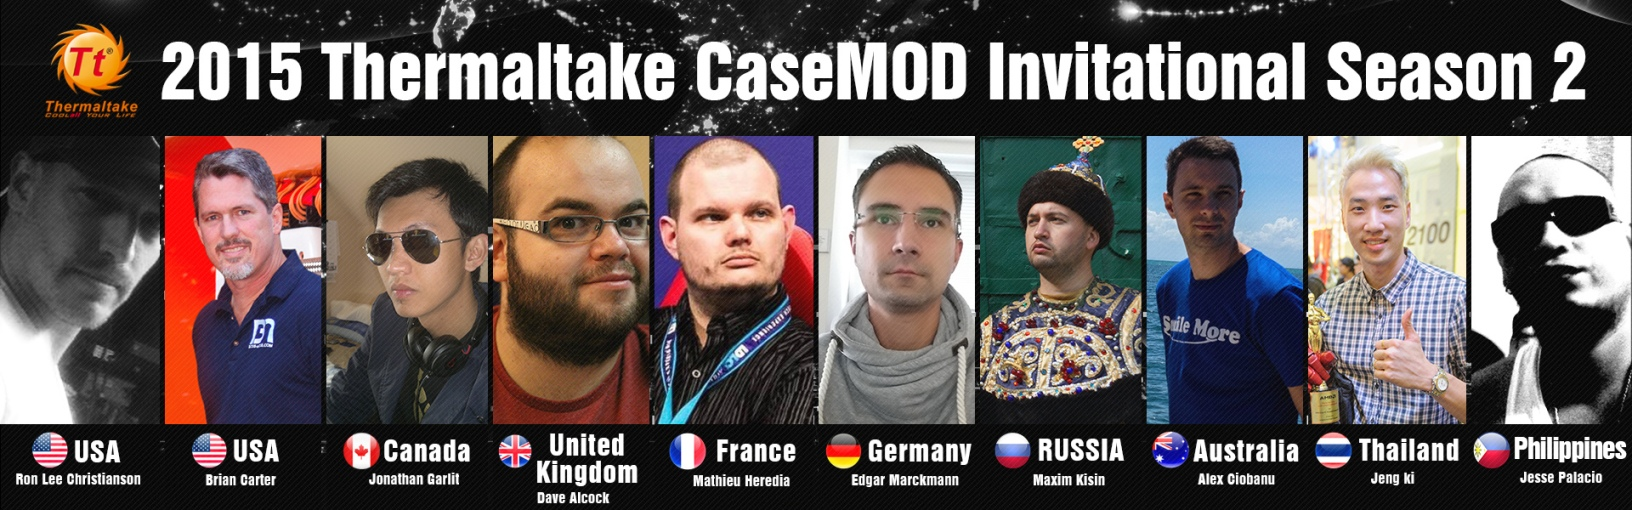 2015 Thermaltake CaseMOD Invitational Season 2 Voting Starts